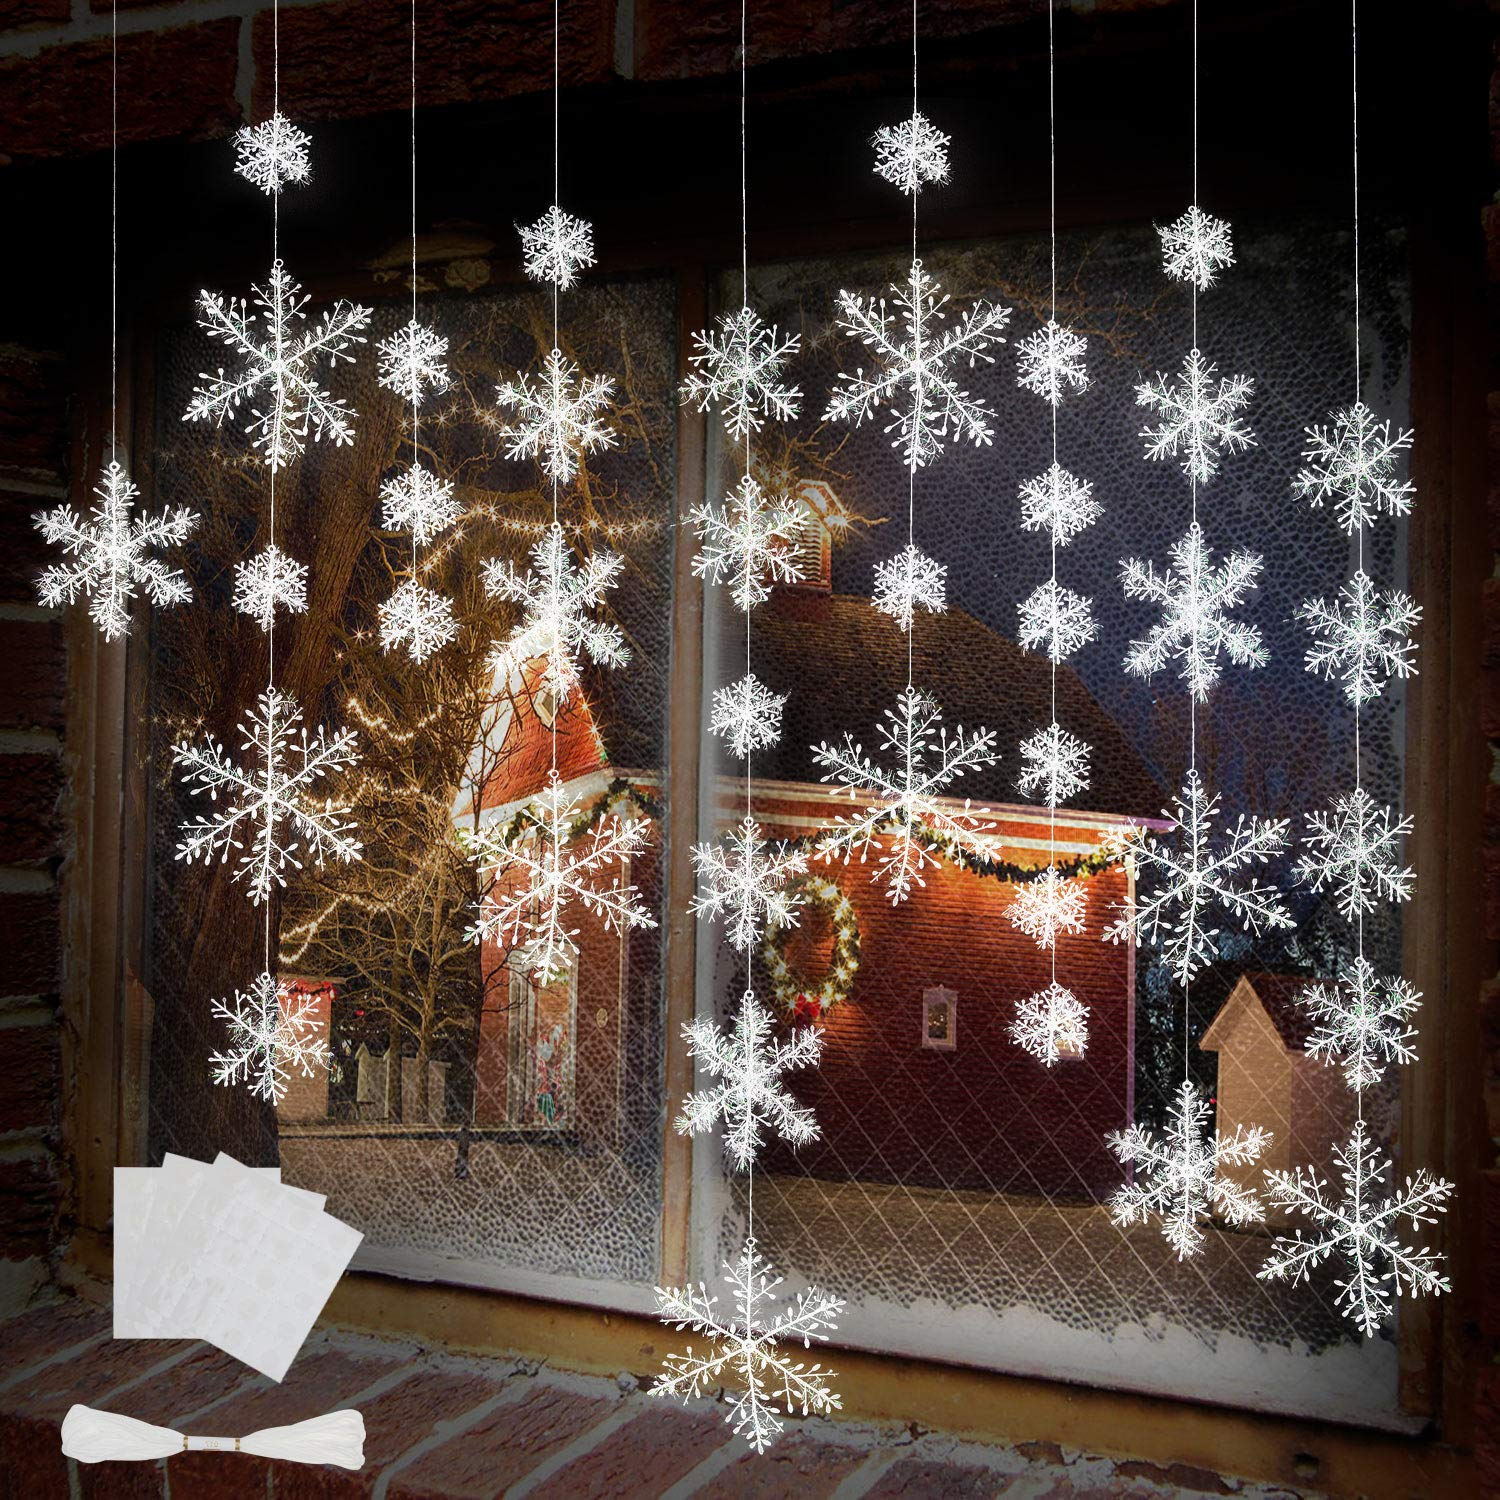 Watch Amscan Sparkling Snowflake Dinner Christmas Napkins(16 Pieces), SilverWhite, 8 x 8 video